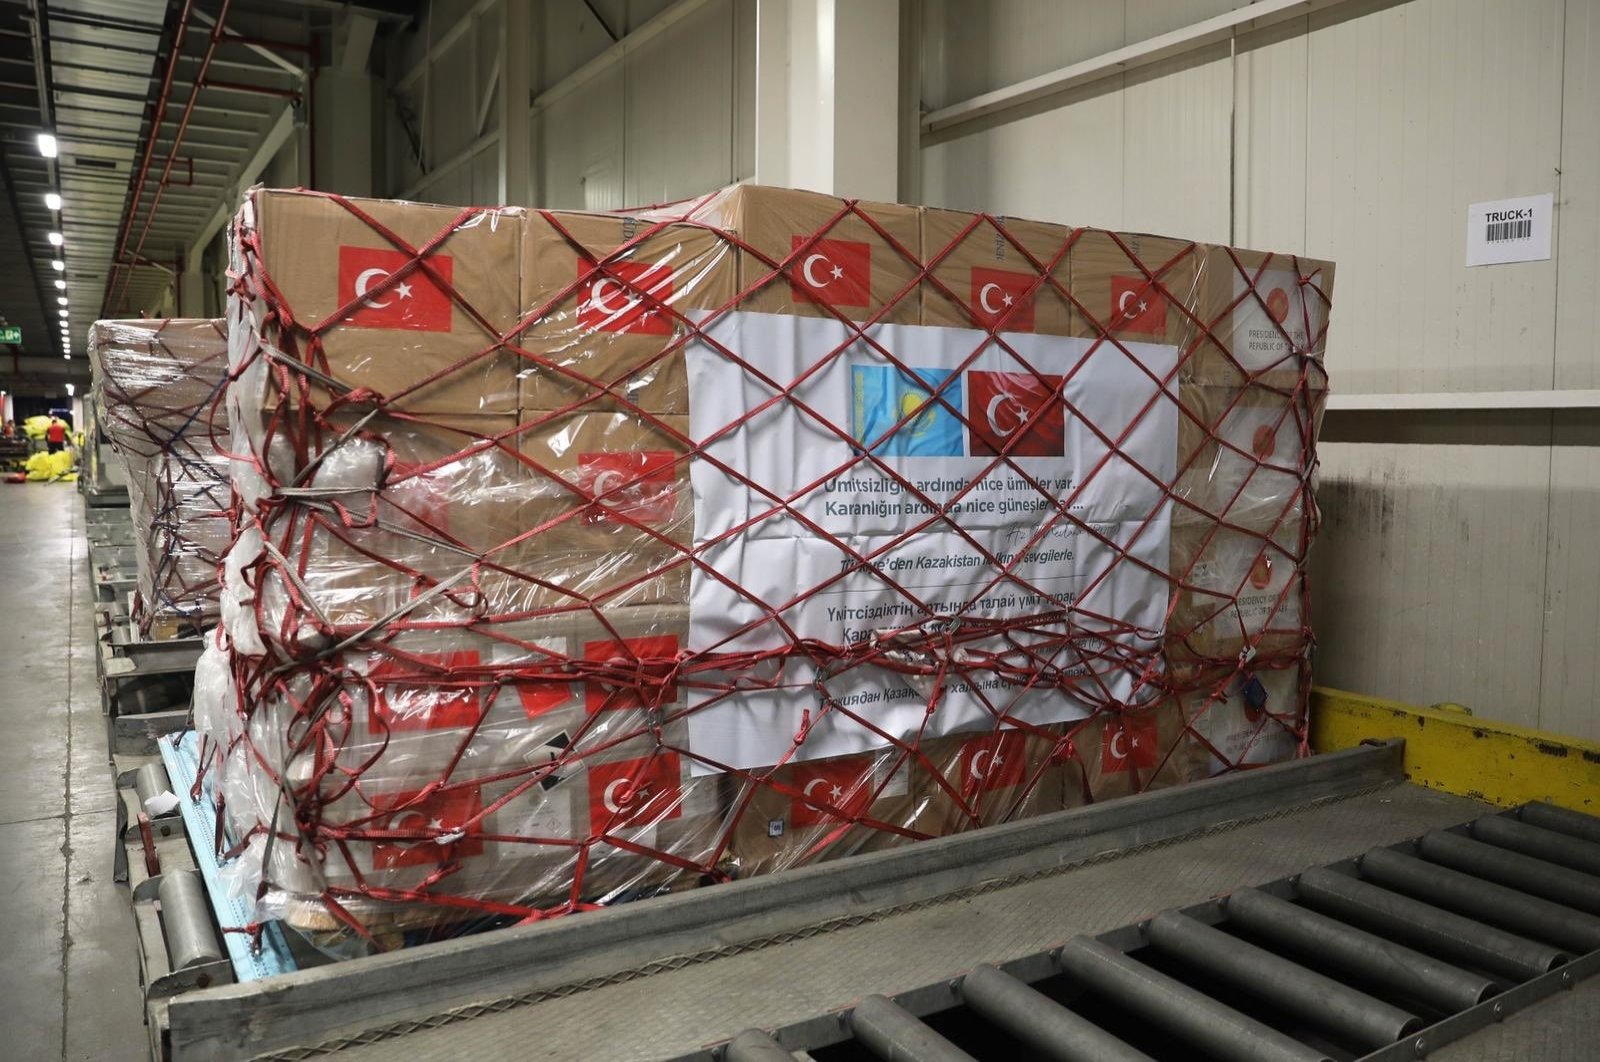 Turkey delivered medical aid equipment to Kazakhstan in order to support the global combat against the novel coronavirus pandemic, May 9, 2020. (İHA Photo)